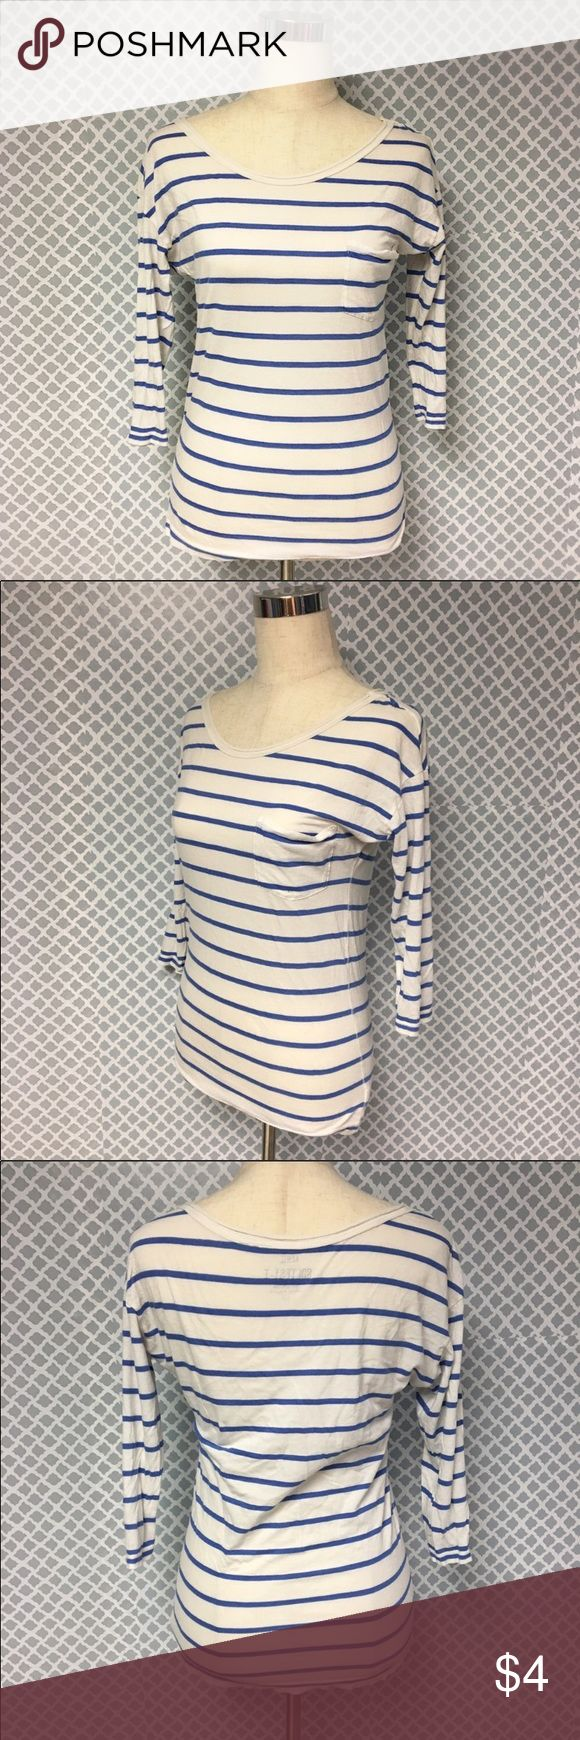 Aerie Softest-T 3/4 Inch Sleeve Top Aerie Softest-T 3/4 Inch Sleeve Top  🔘Description: American Eagle Aerie Softest-T 3/4 Inch Sleeve Blue and White Horizontal Stripe Top  🔘Condition: Very Good 🔘Material: 60% Cotton 40% Modal 🔘Measurements:      Pit to Pit - 18 Inches      Shoulder to Hem - 25 Inches           💎 Price is Firm💎 ⭐️ 15% Off All Bundles! 🛍                  💞Thanks for stopping by! 😘 Inventory: A American Eagle Outfitters Tops